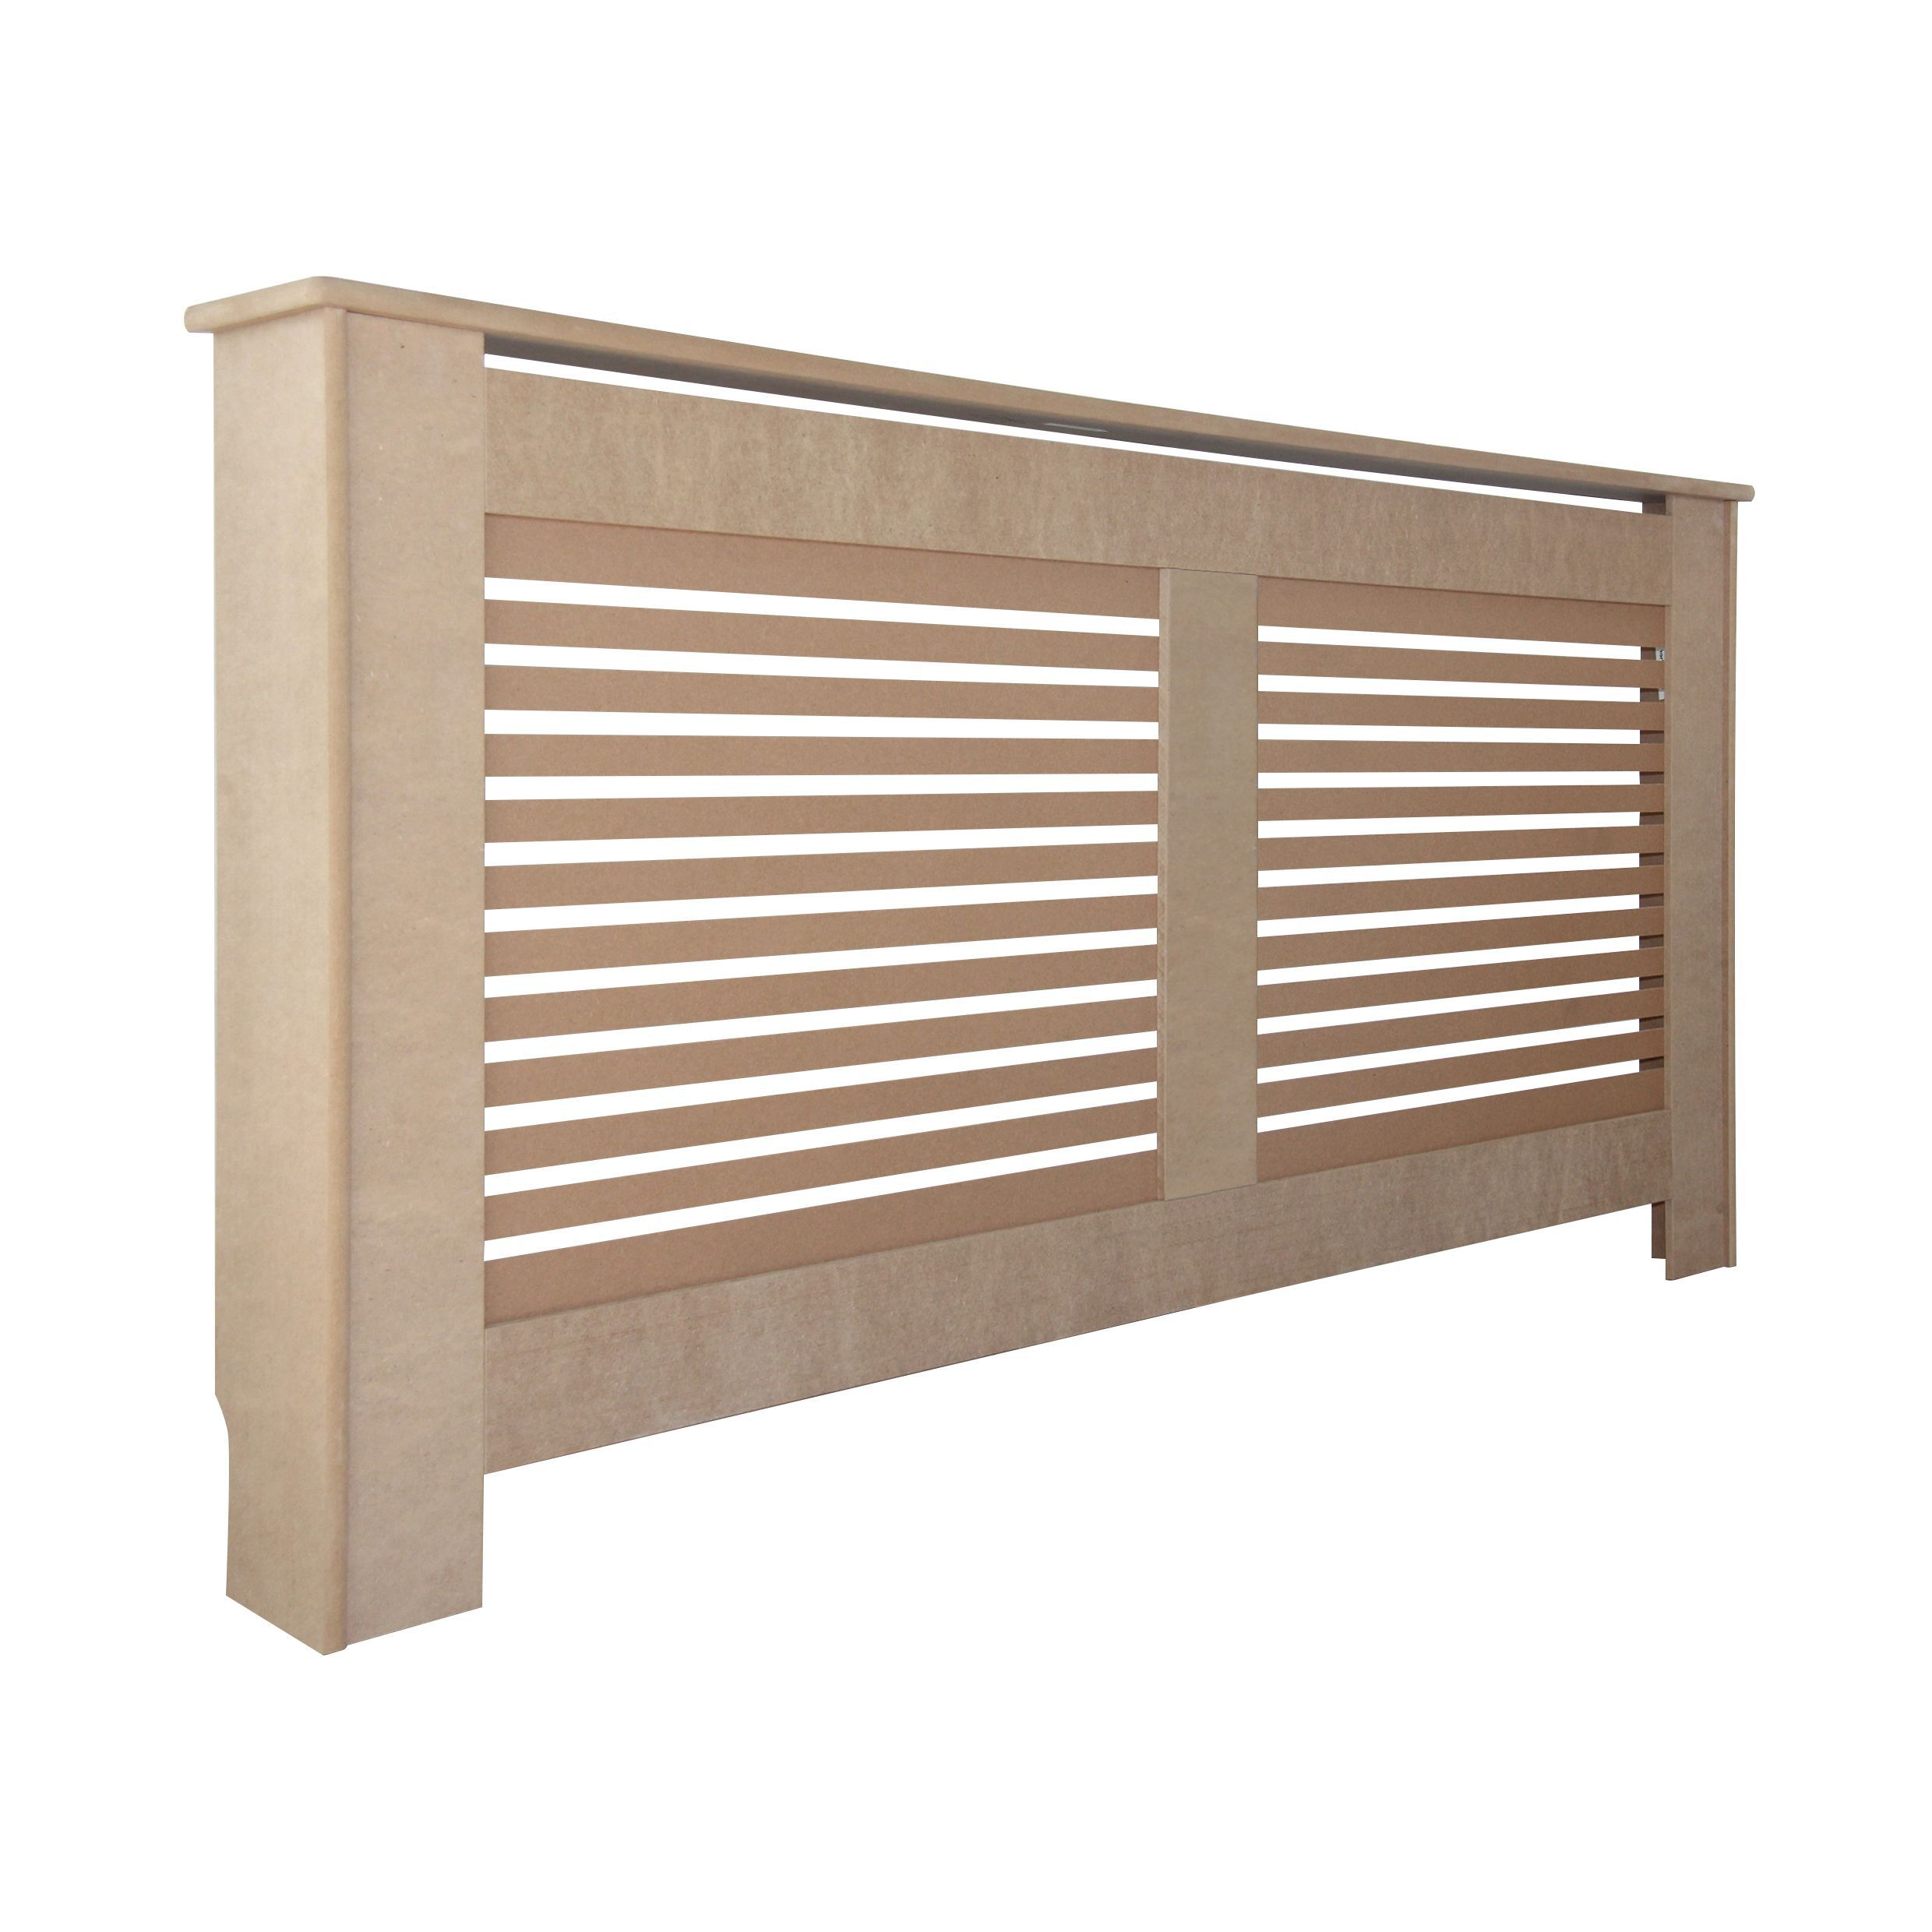 new suffolk large radiator cover departments diy at b q. Black Bedroom Furniture Sets. Home Design Ideas